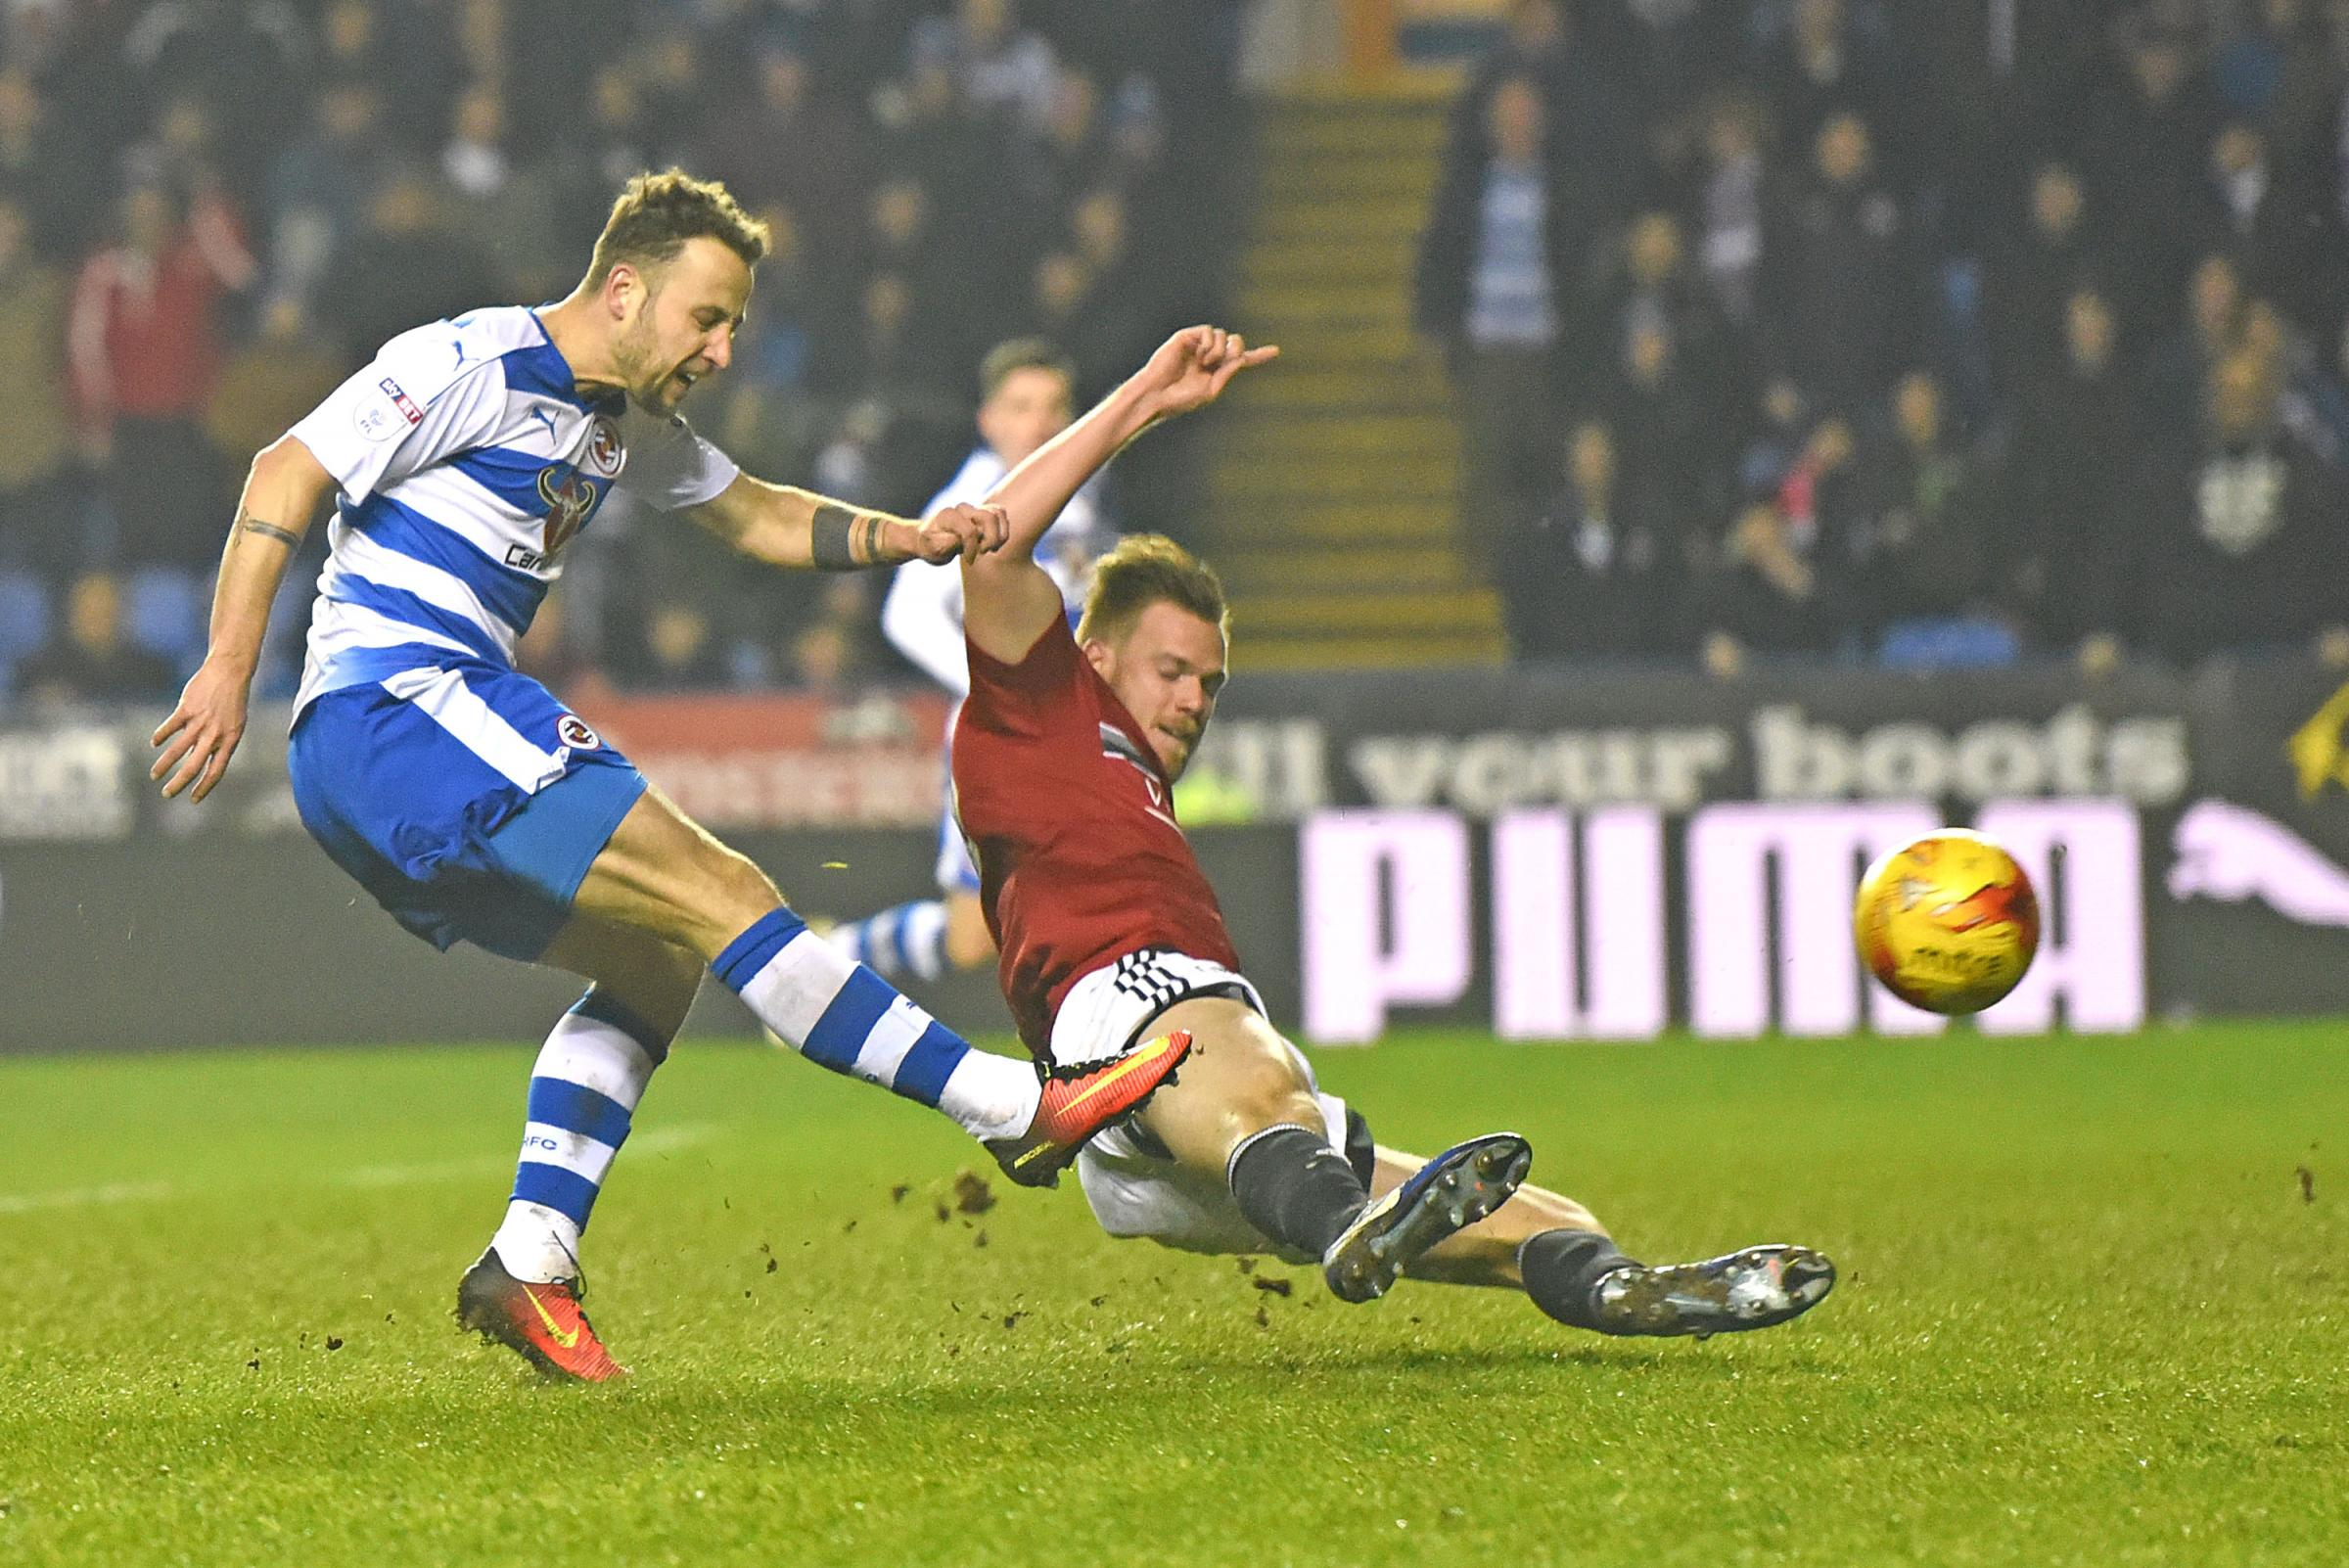 Reading FC: Roy Beerens urges Royals to improve on Barnsley stalemate when ... - Reading Chronicle